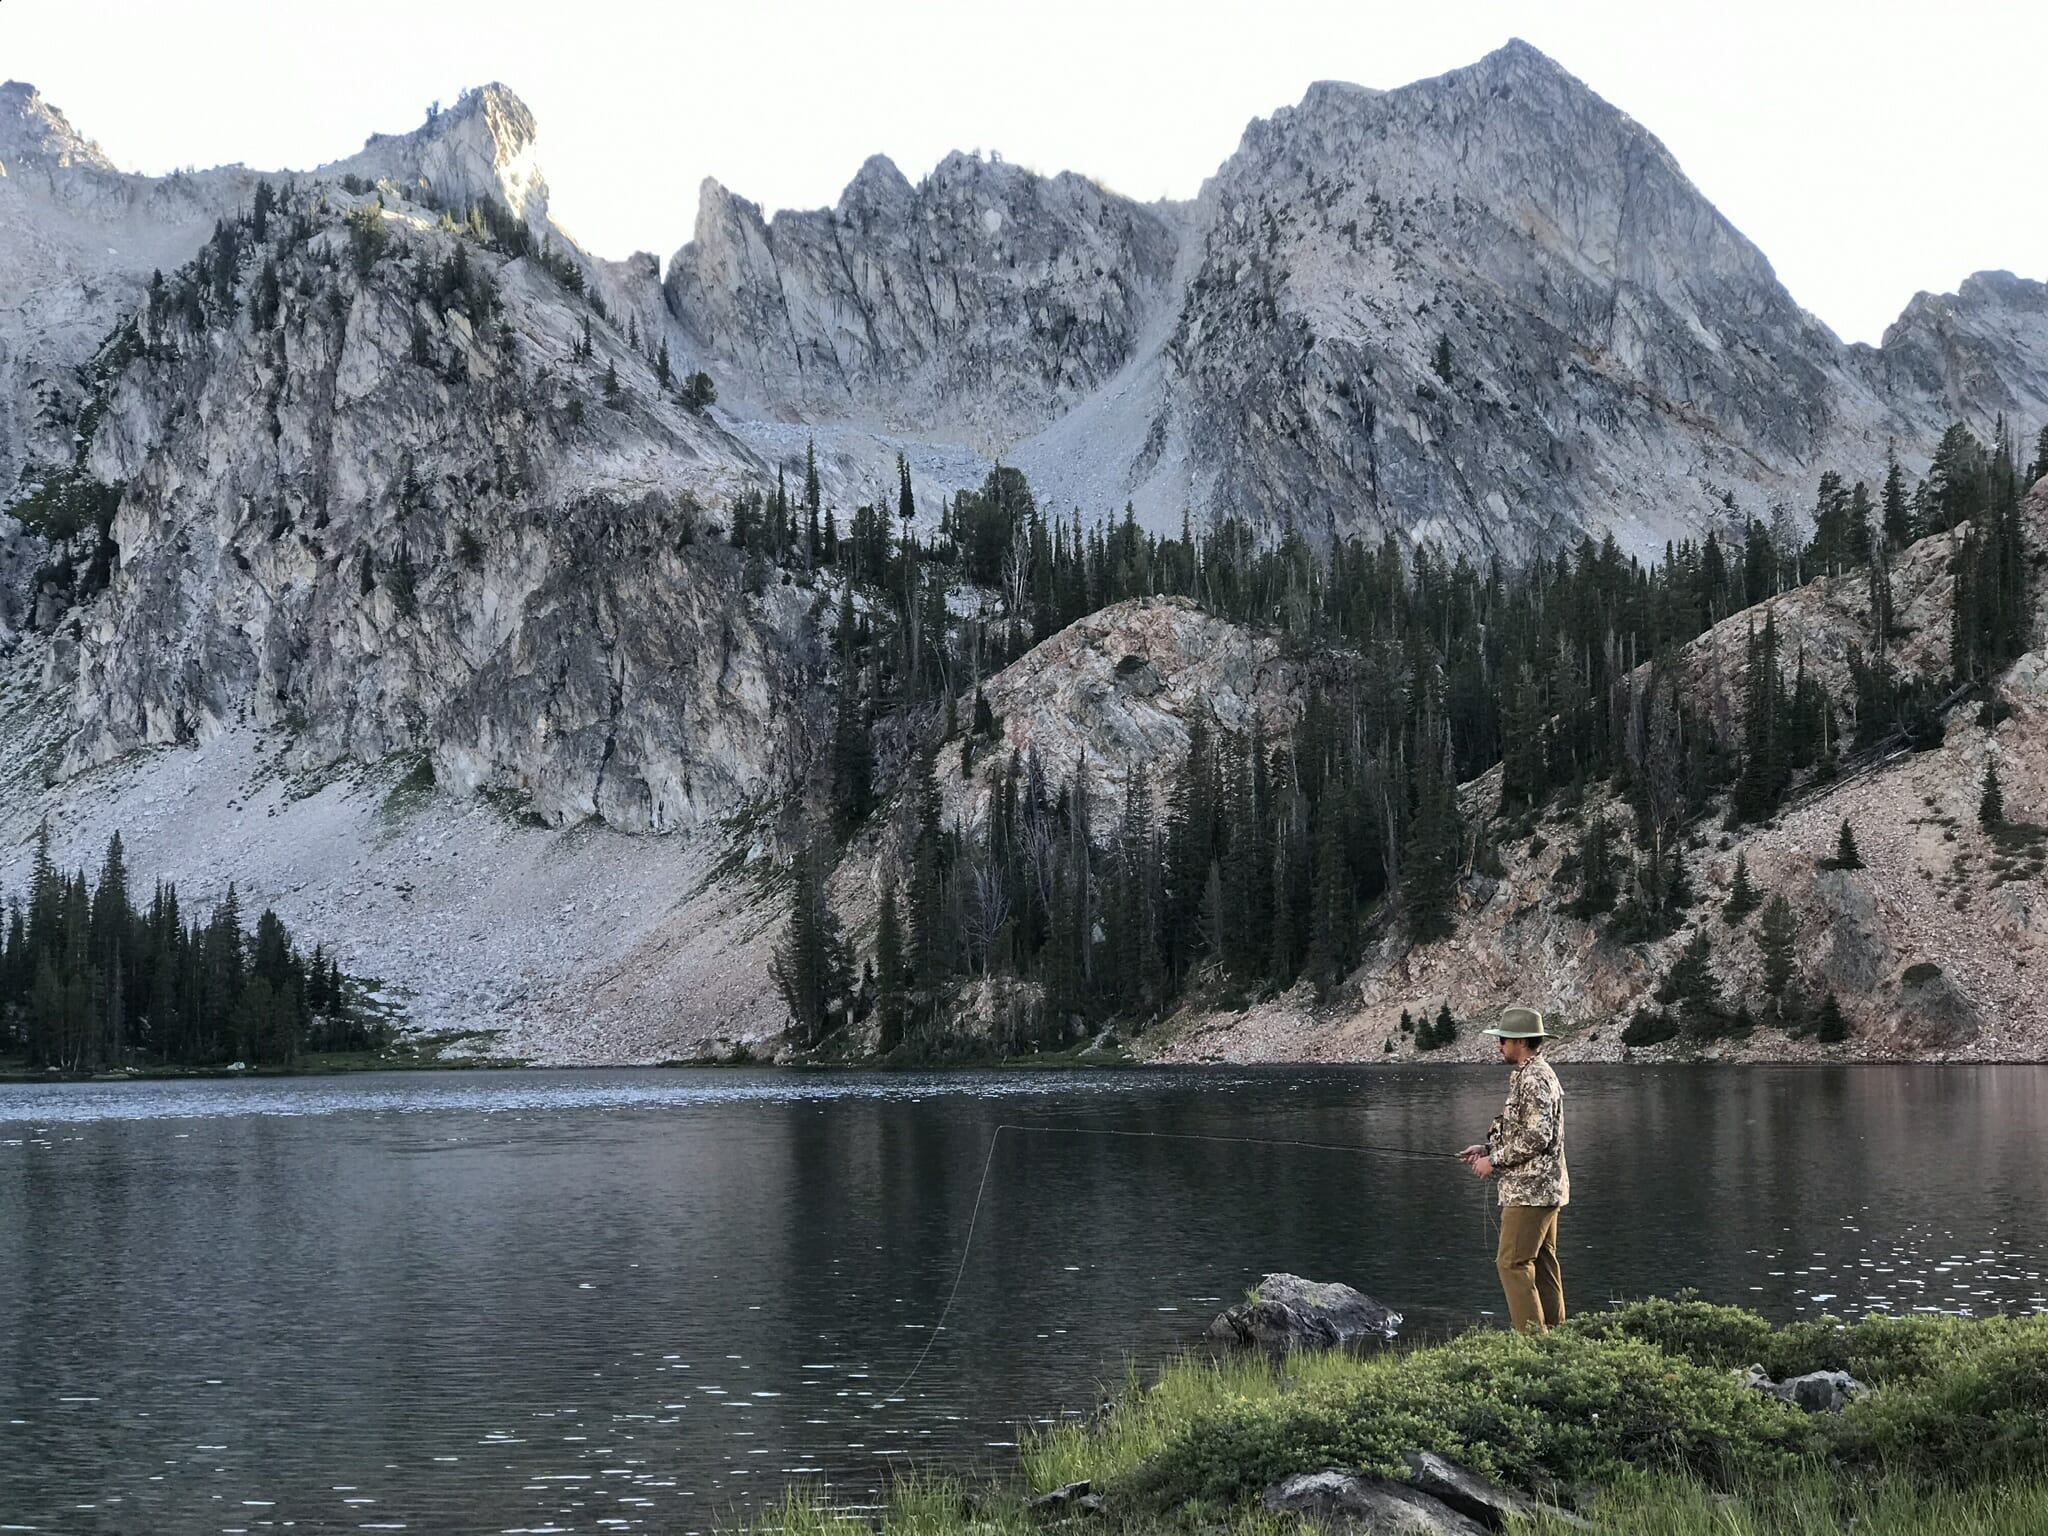 Casting for trout in a mountain lake.